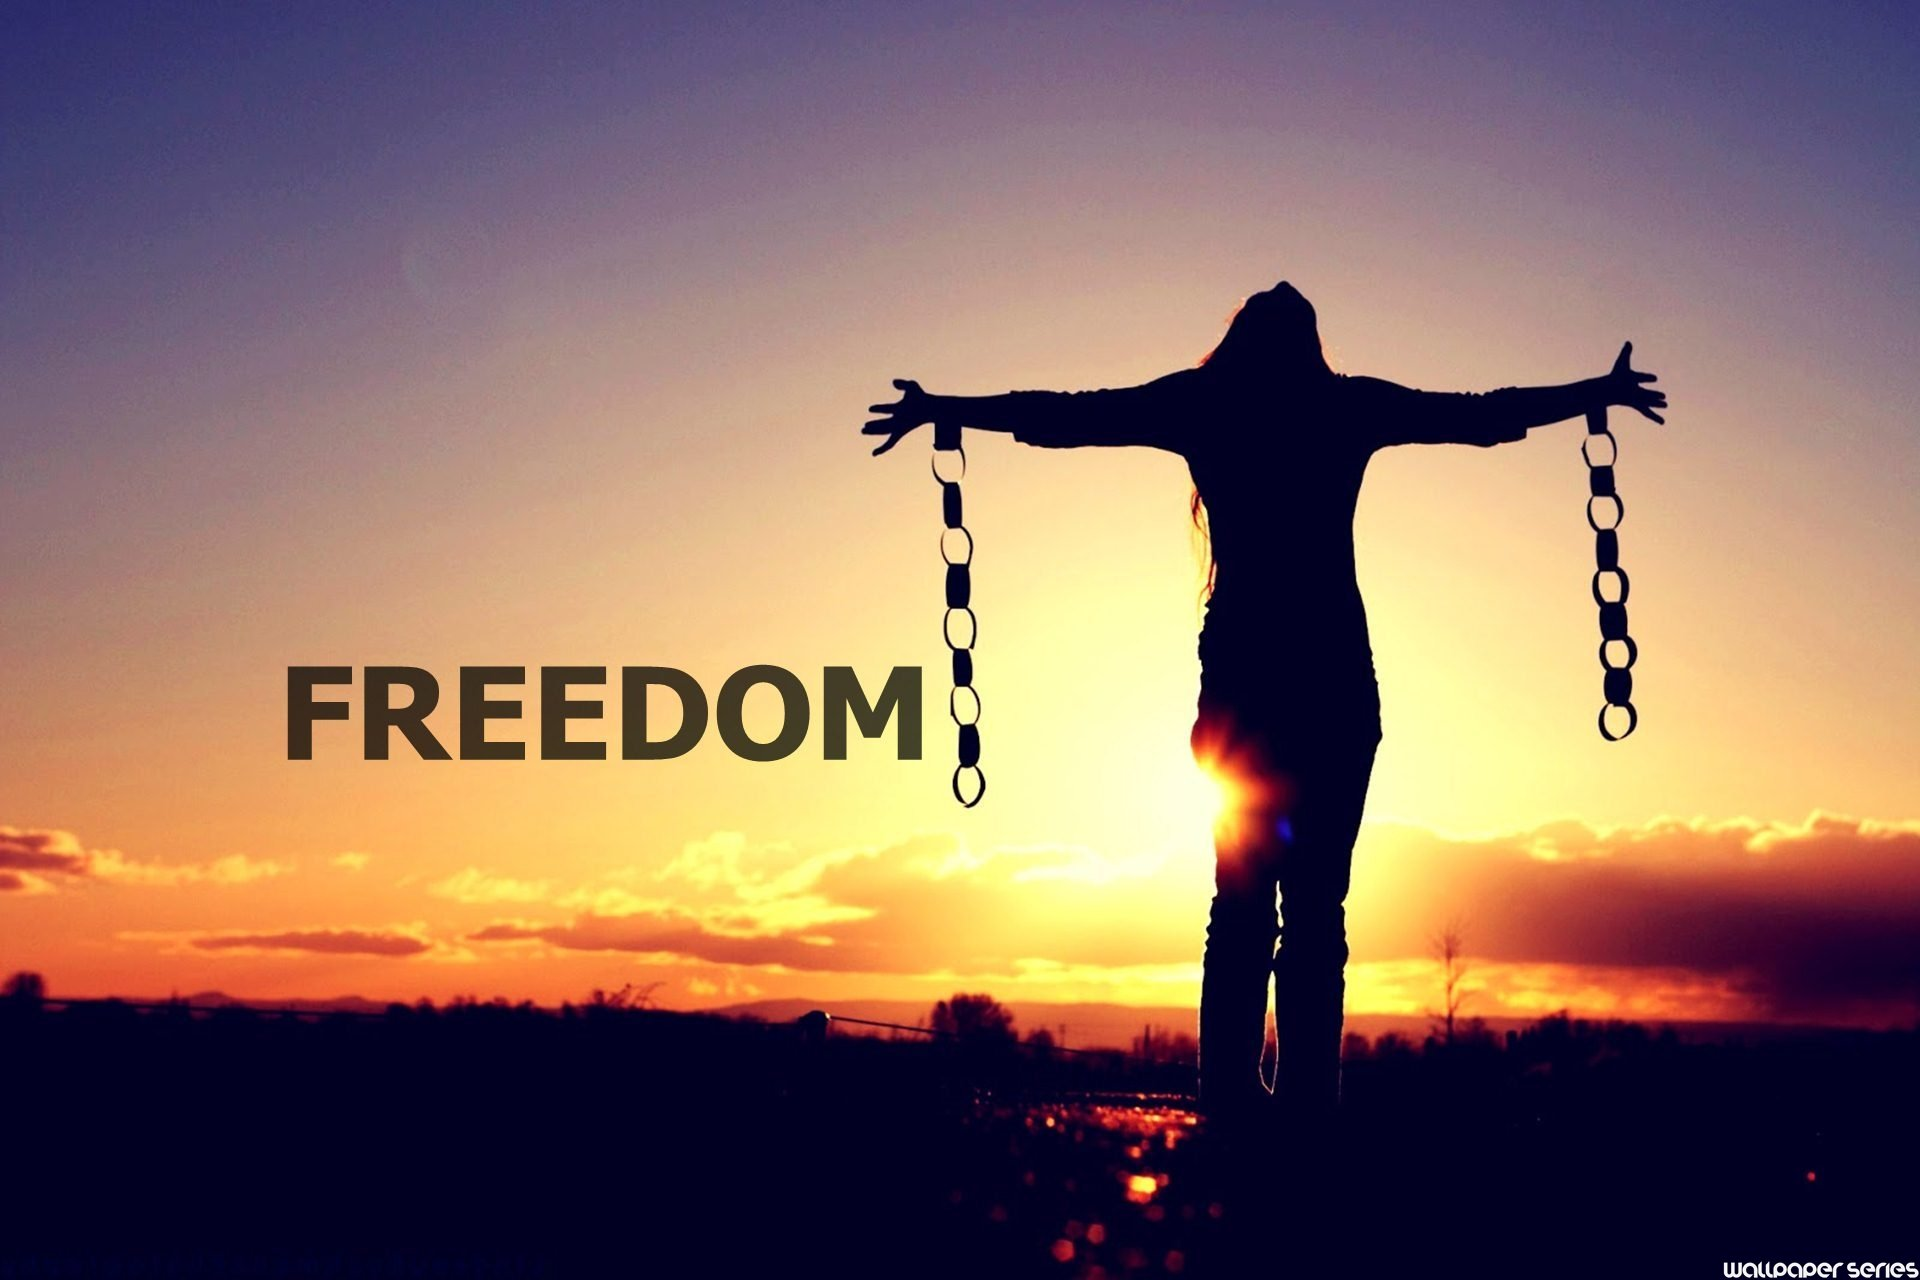 Freedom Picture Freedom The Voice Of A Quiet Girl